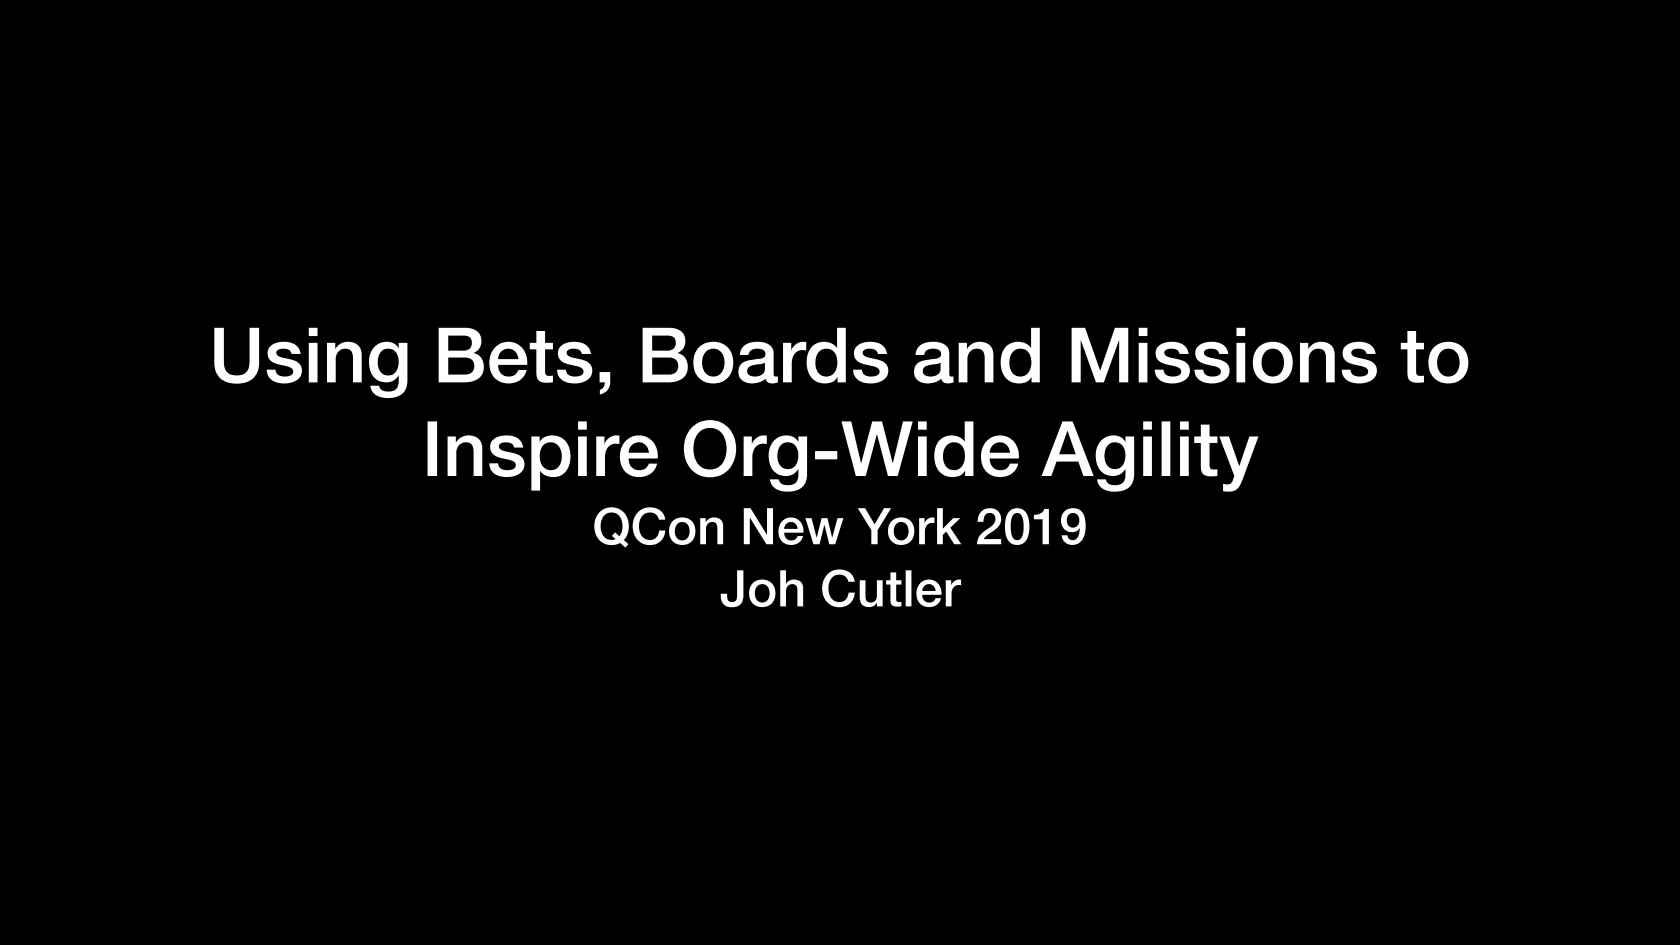 Using Bets, Boards and Missions to Inspire Org-wide Agility